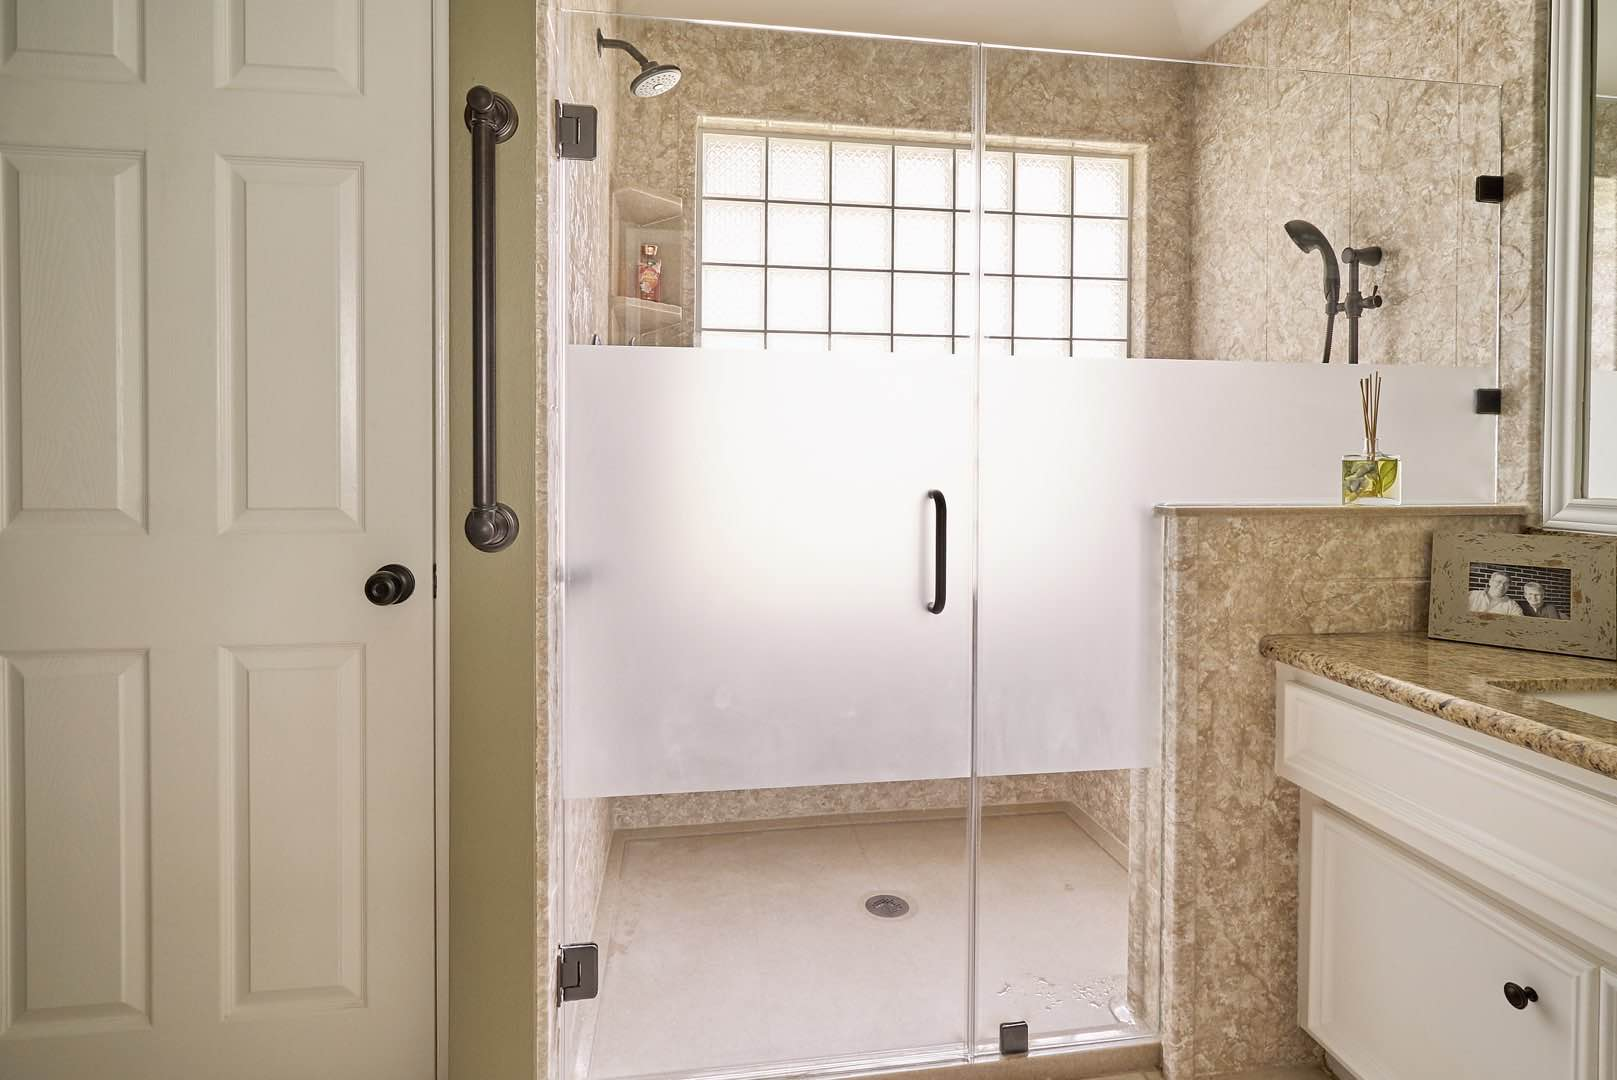 Bathroom Remodeling Specials And Coupons - Bathroom remodel specials